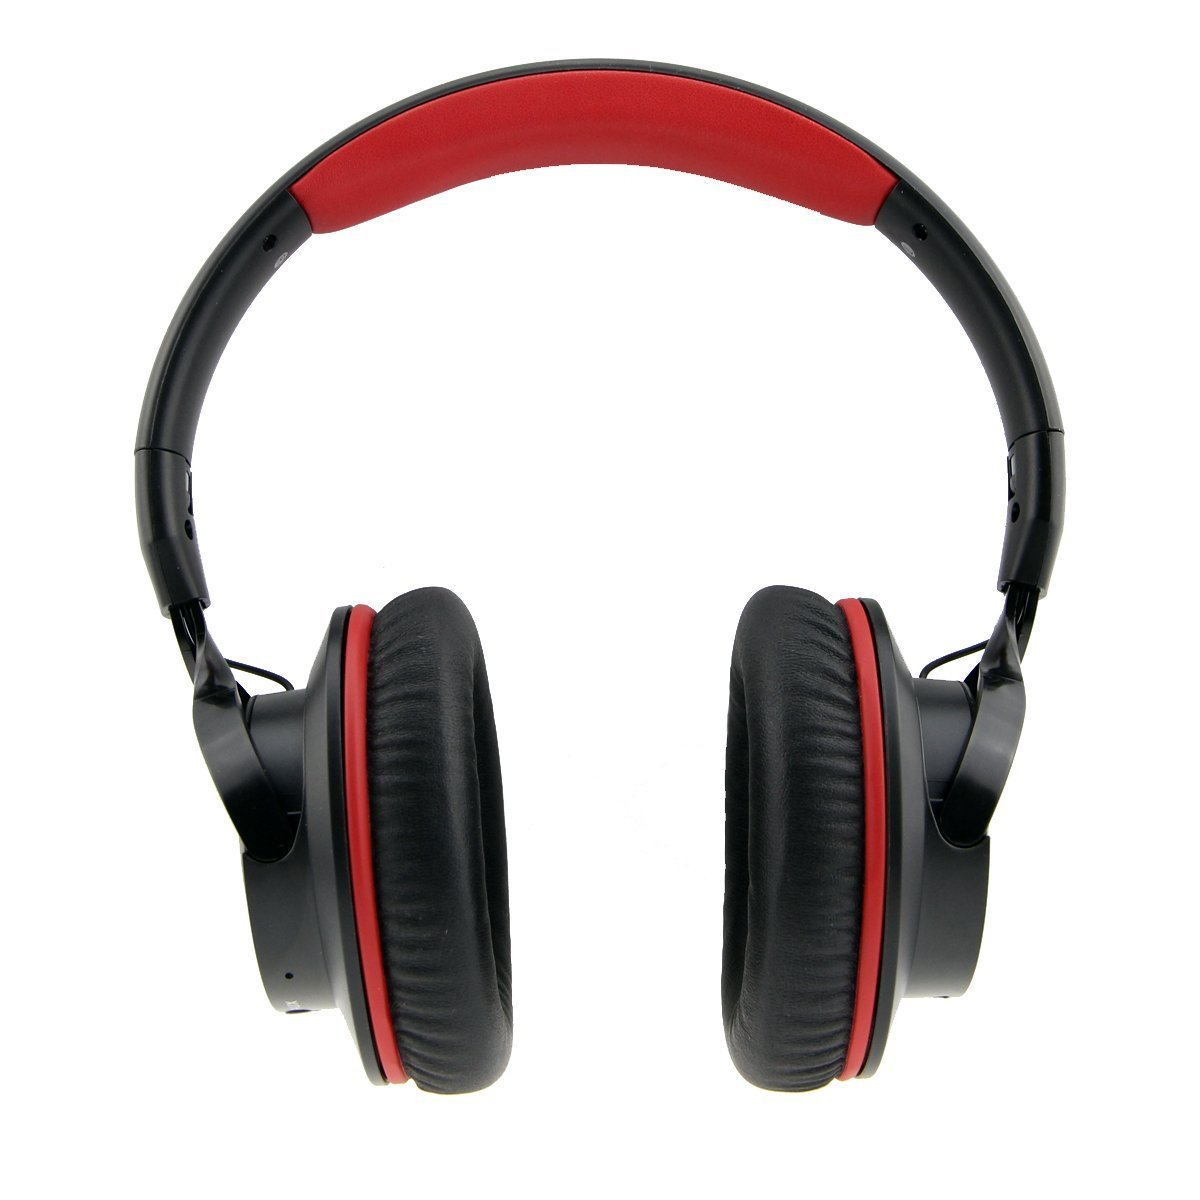 bluetooth headphone reviews over ear bluetooth headphones. Black Bedroom Furniture Sets. Home Design Ideas